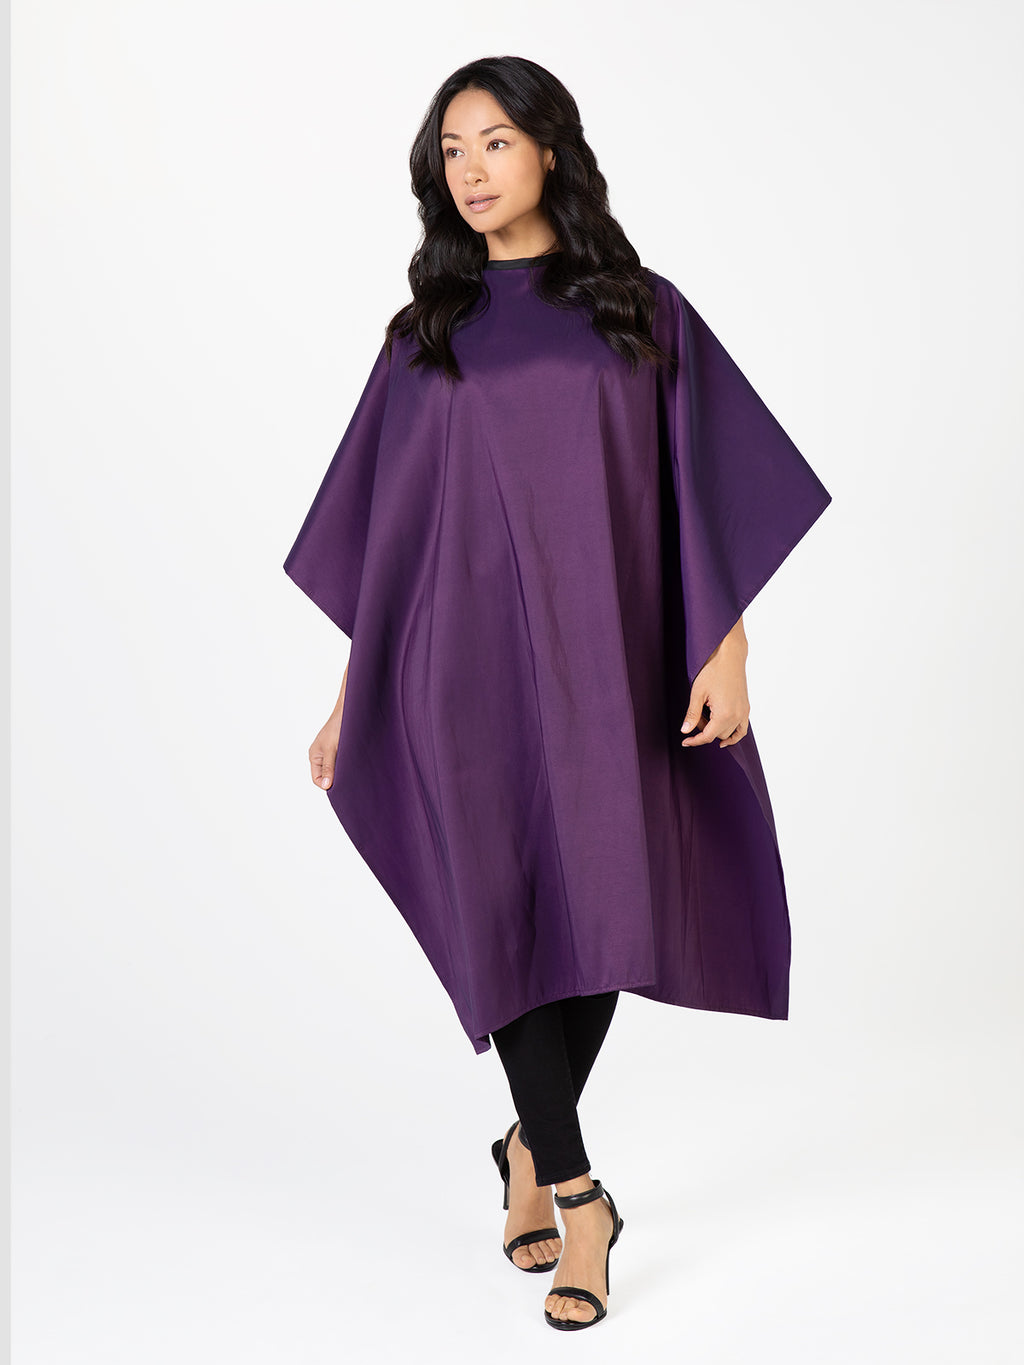 Classique Styling Cape Betty Dain Salon Capes